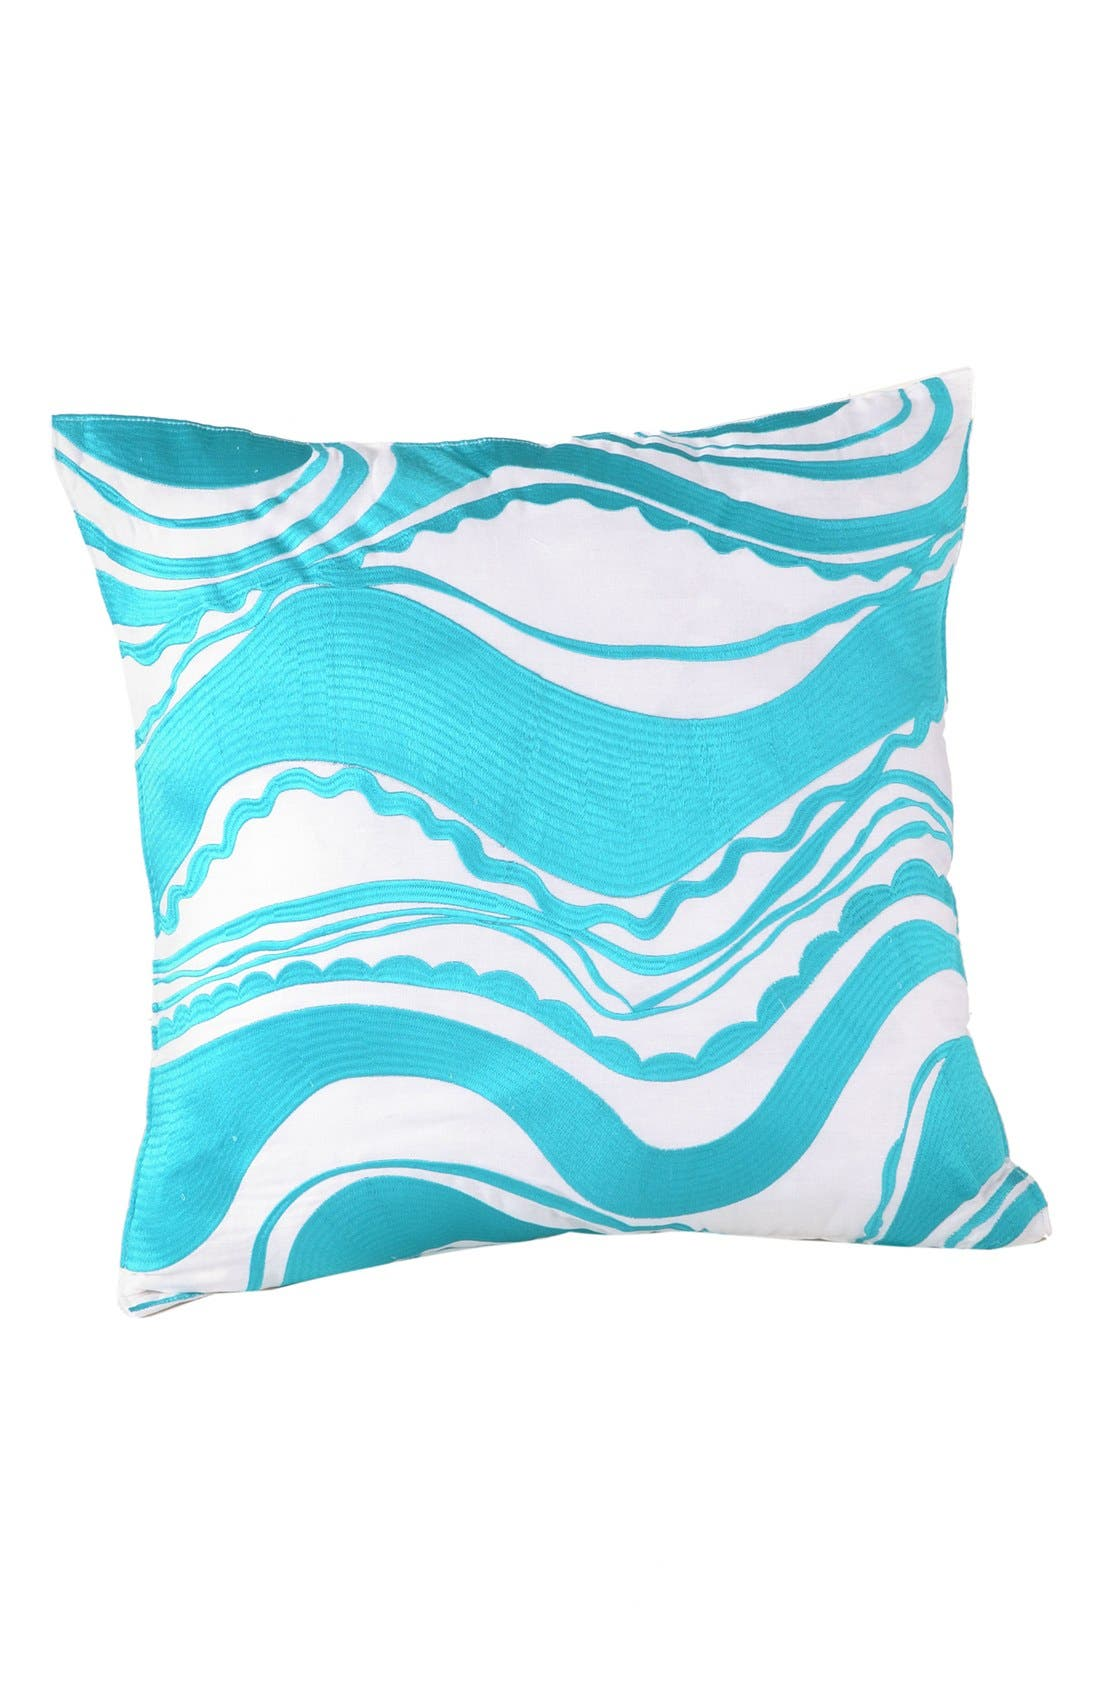 Main Image - Trina Turk 'Horizon Stripe' Pillow